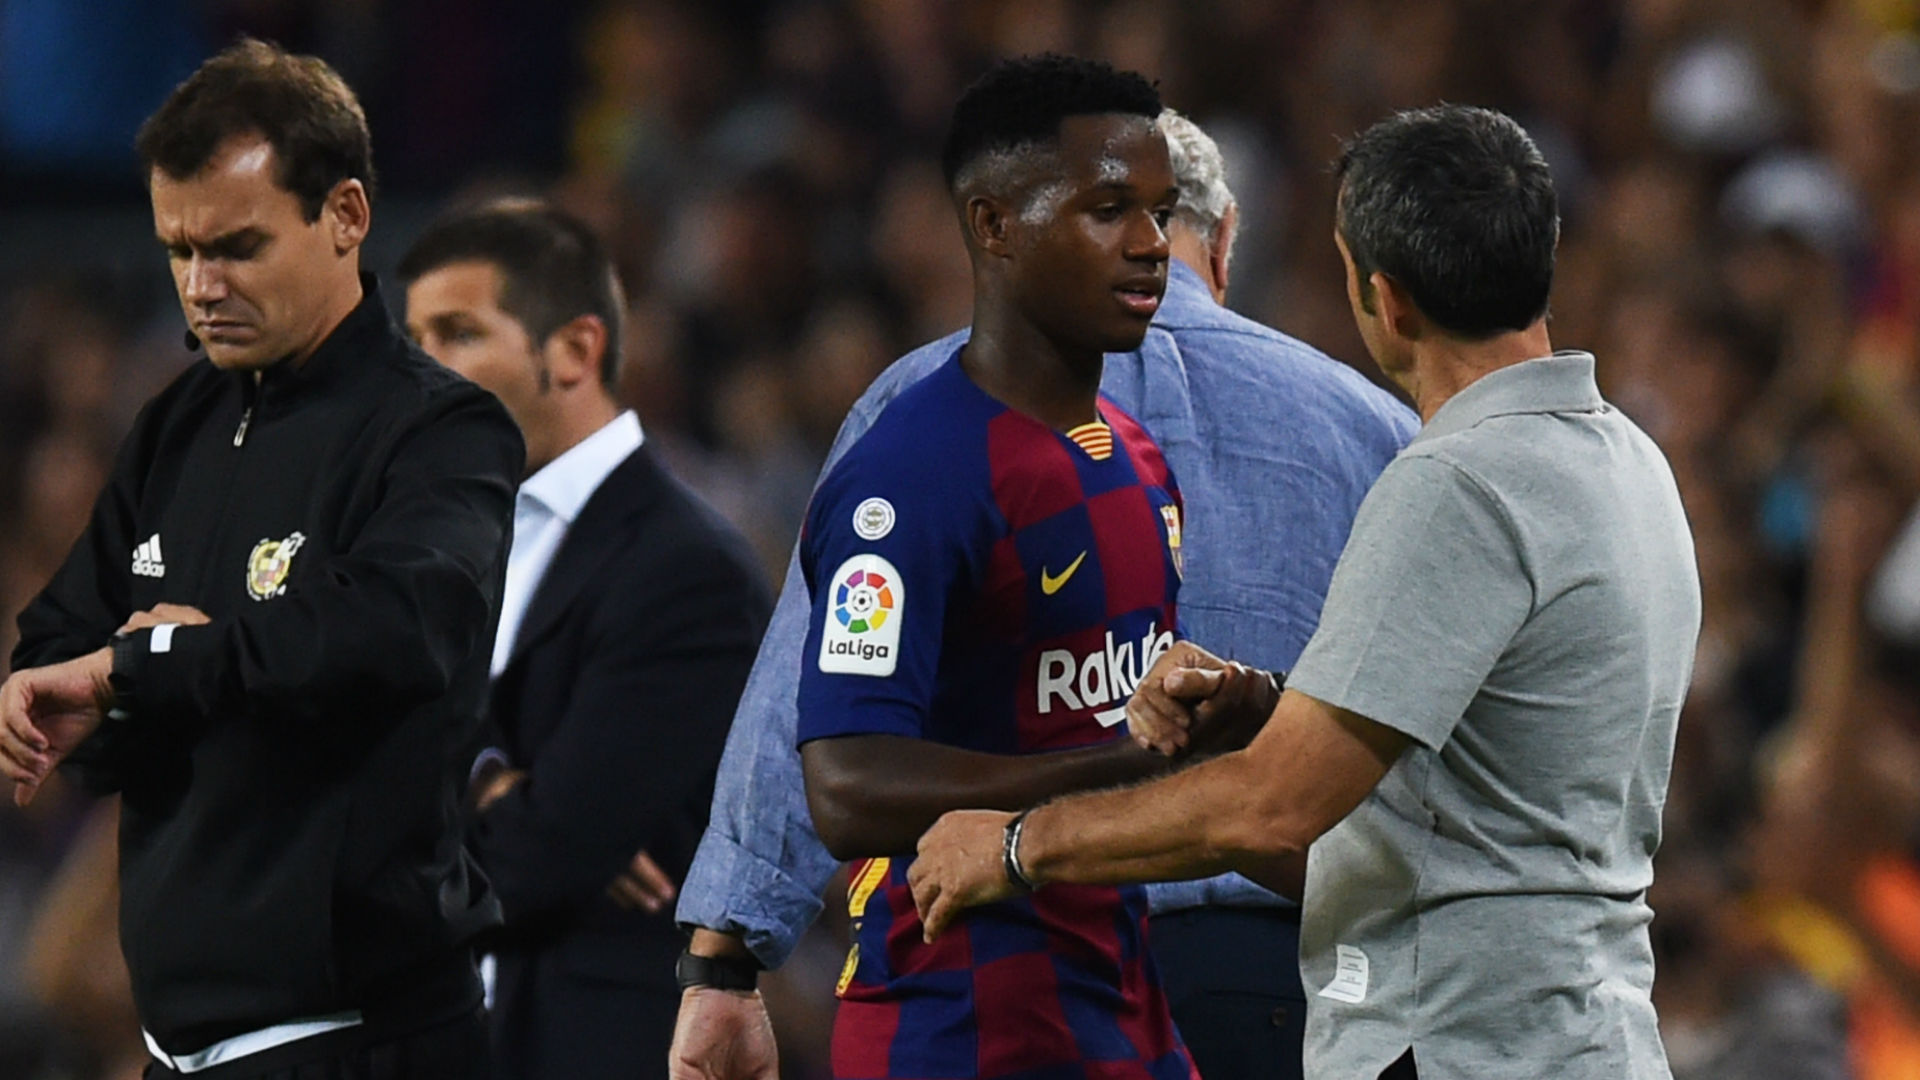 'Fati is not normal!' - Valverde showers praise on Barca wonderkid after Valencia rout